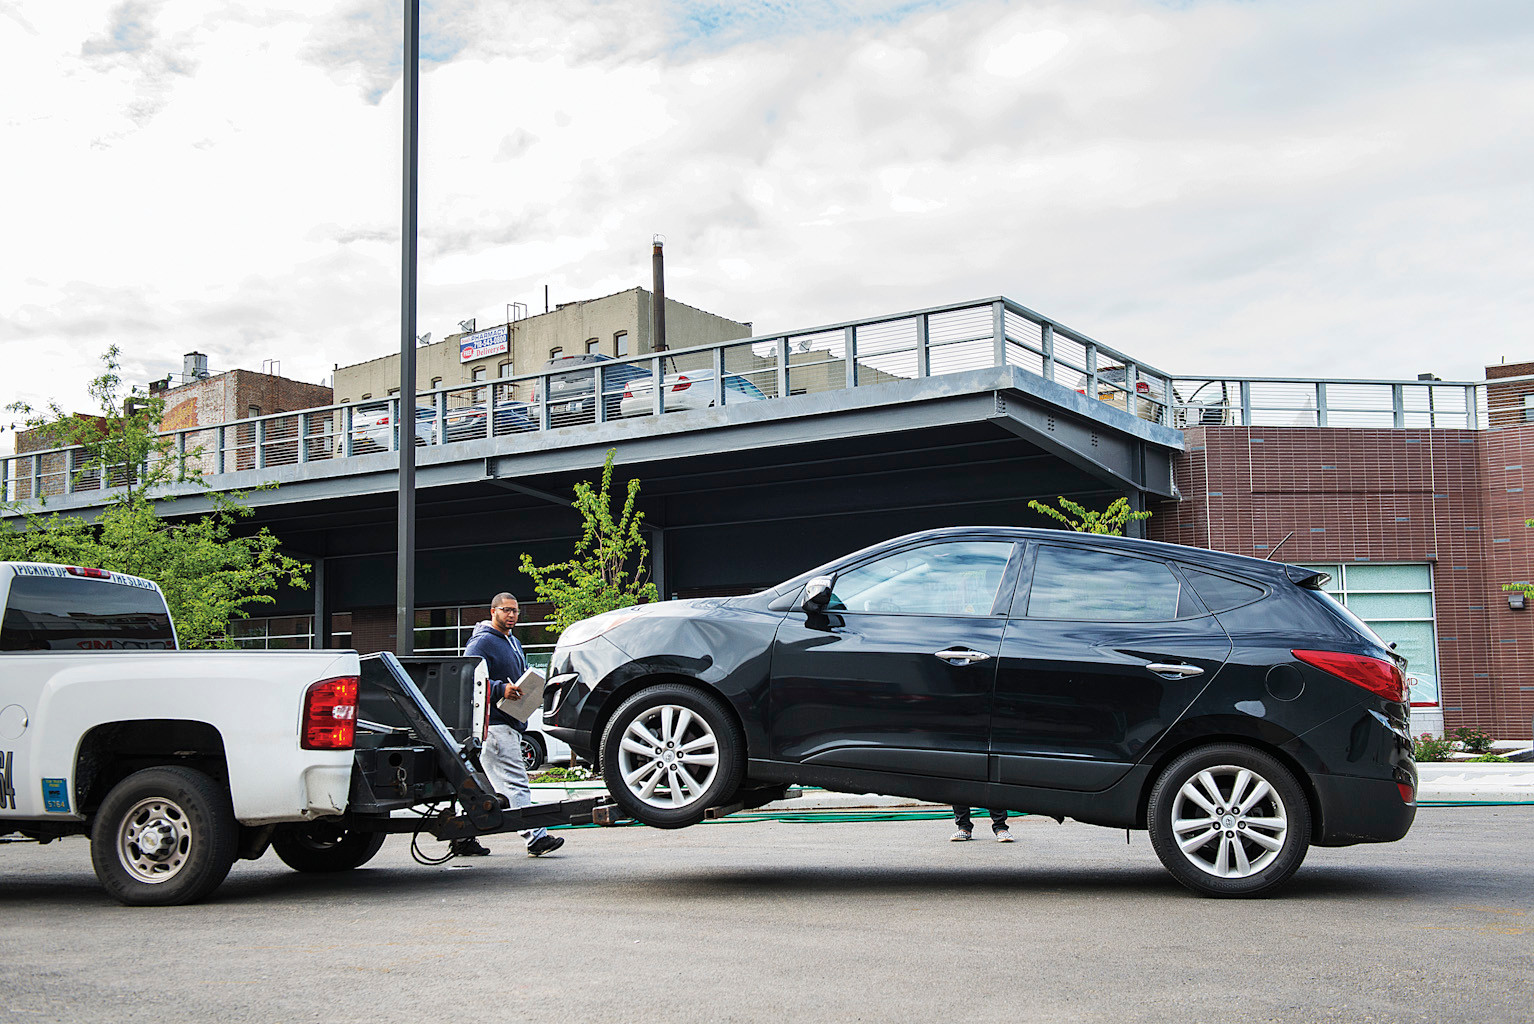 A Hyundai SUV is towed from the parking lot at the new PetCo parking lot in Kingsbridge on June 4.